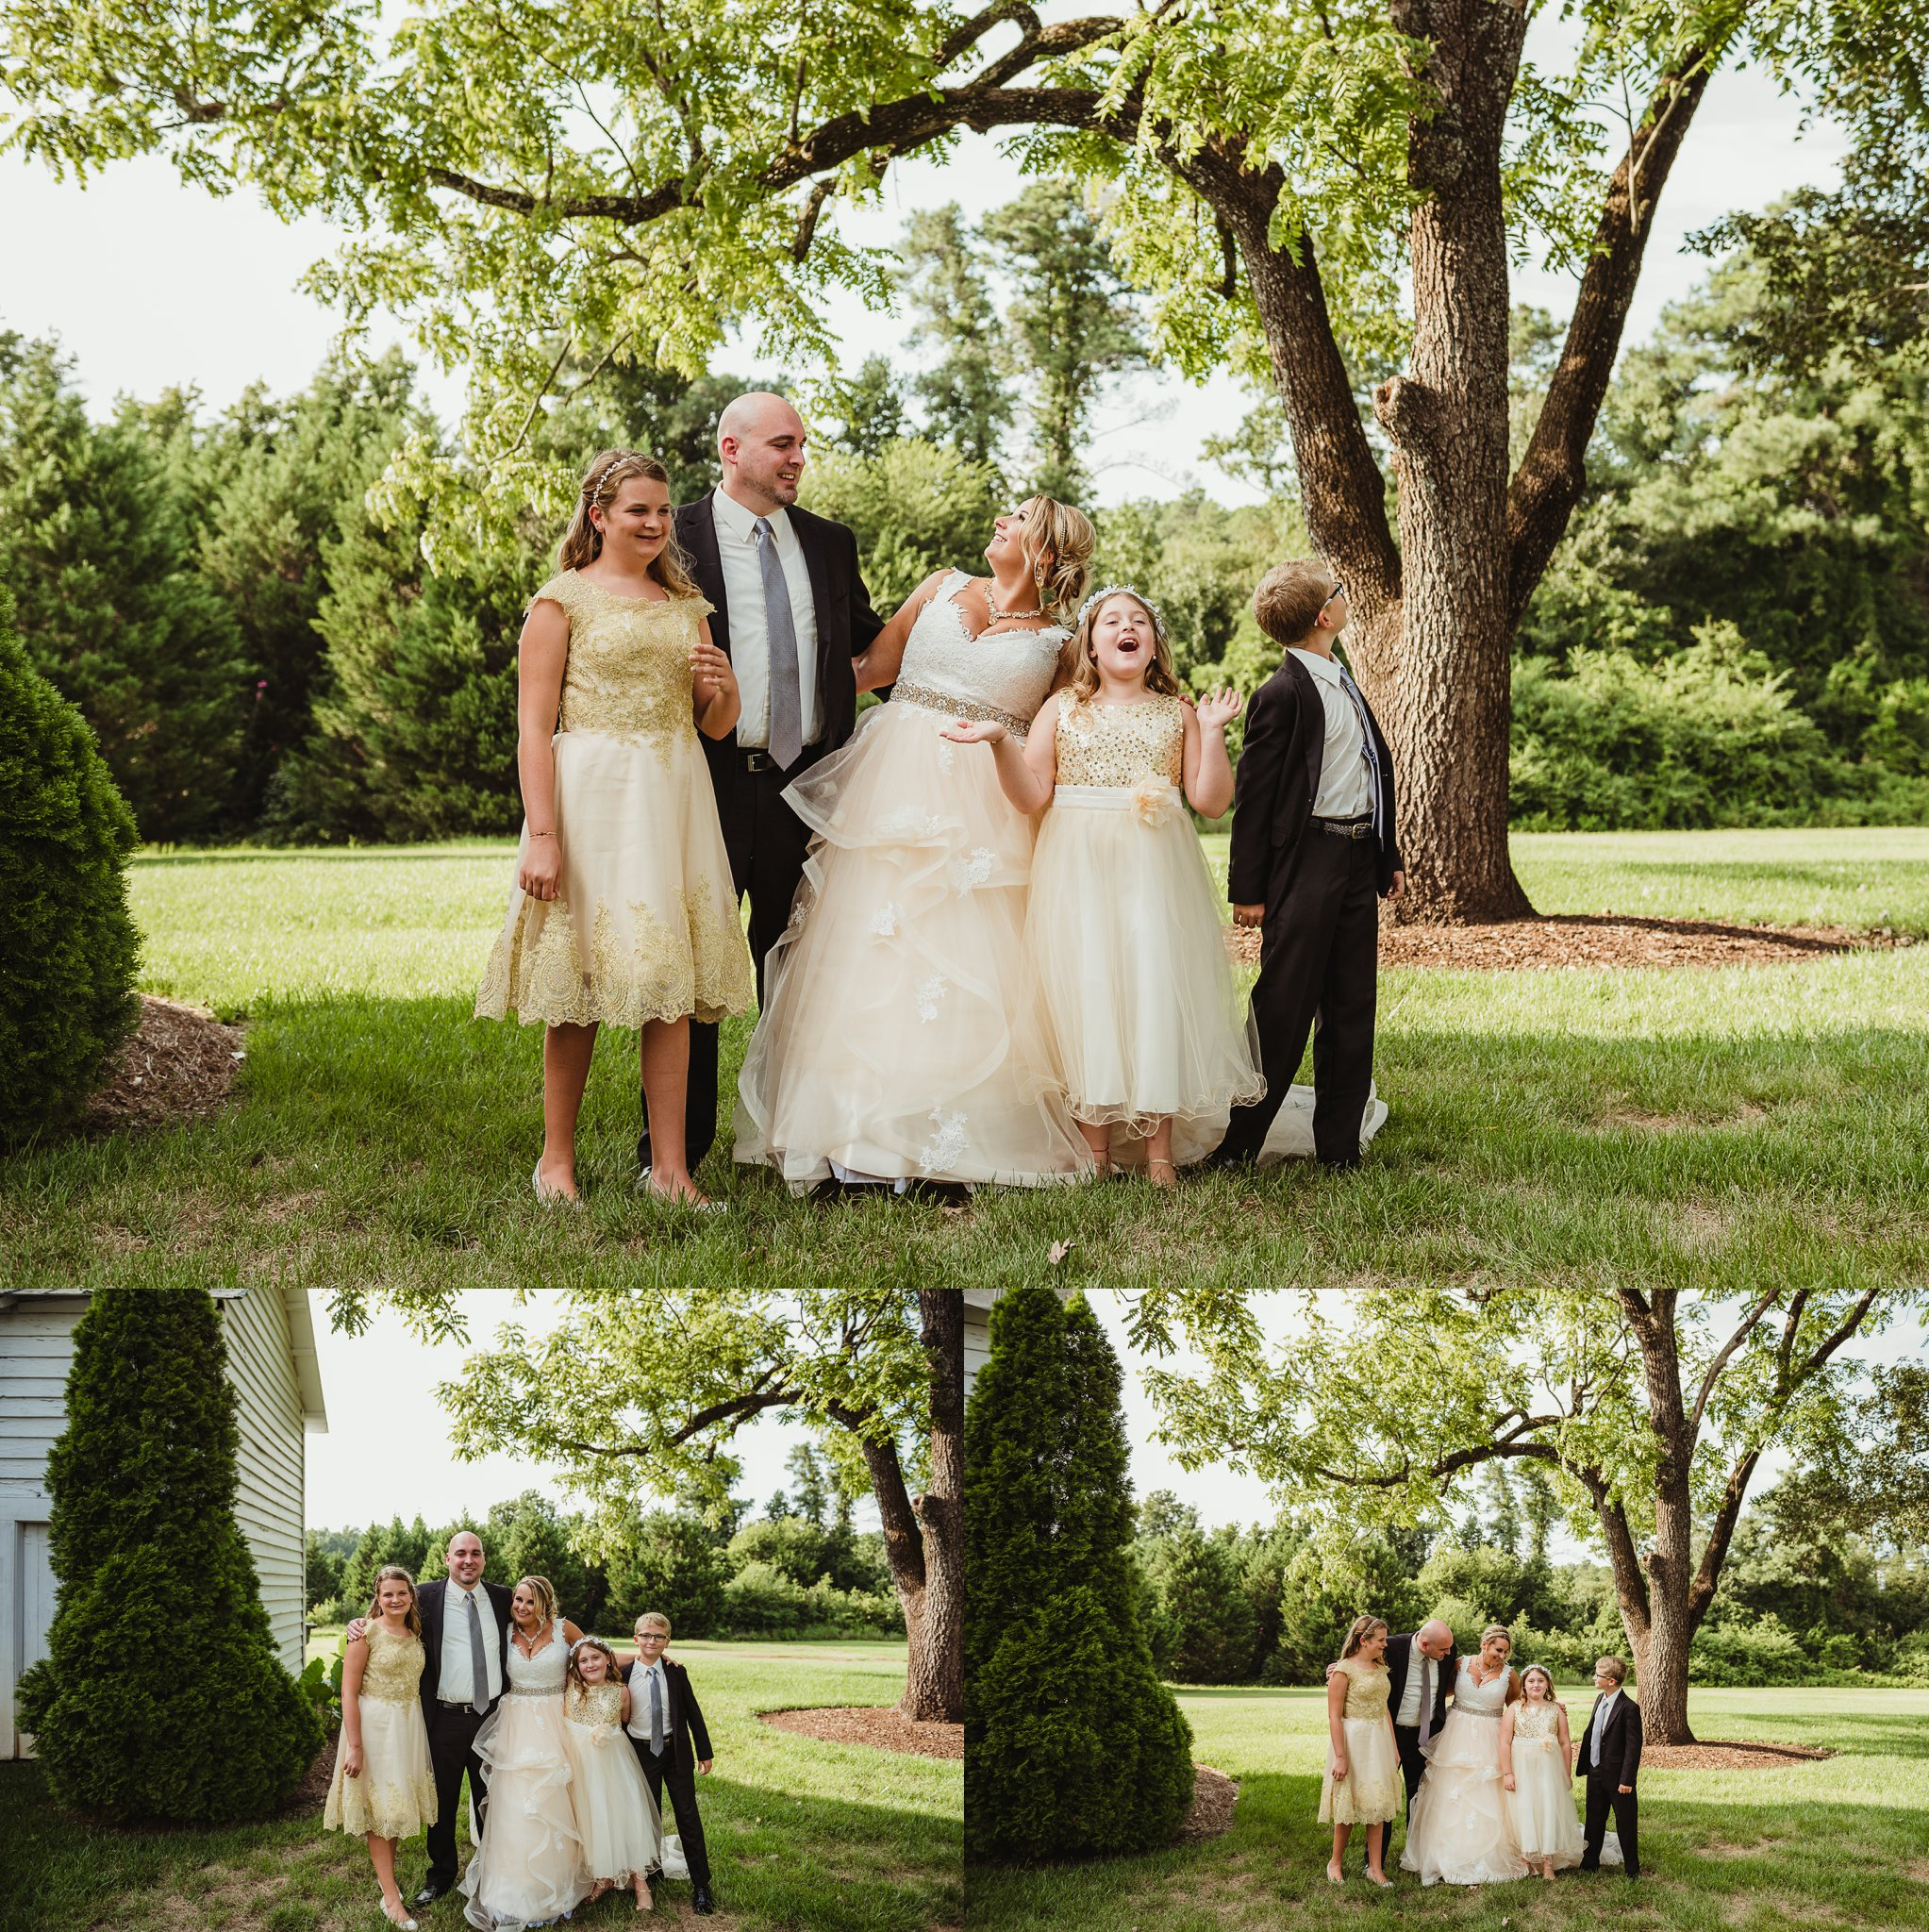 The bride and groom had their family pictures taken before their wedding ceremony in Raleigh, photos by Rose Trail Images.